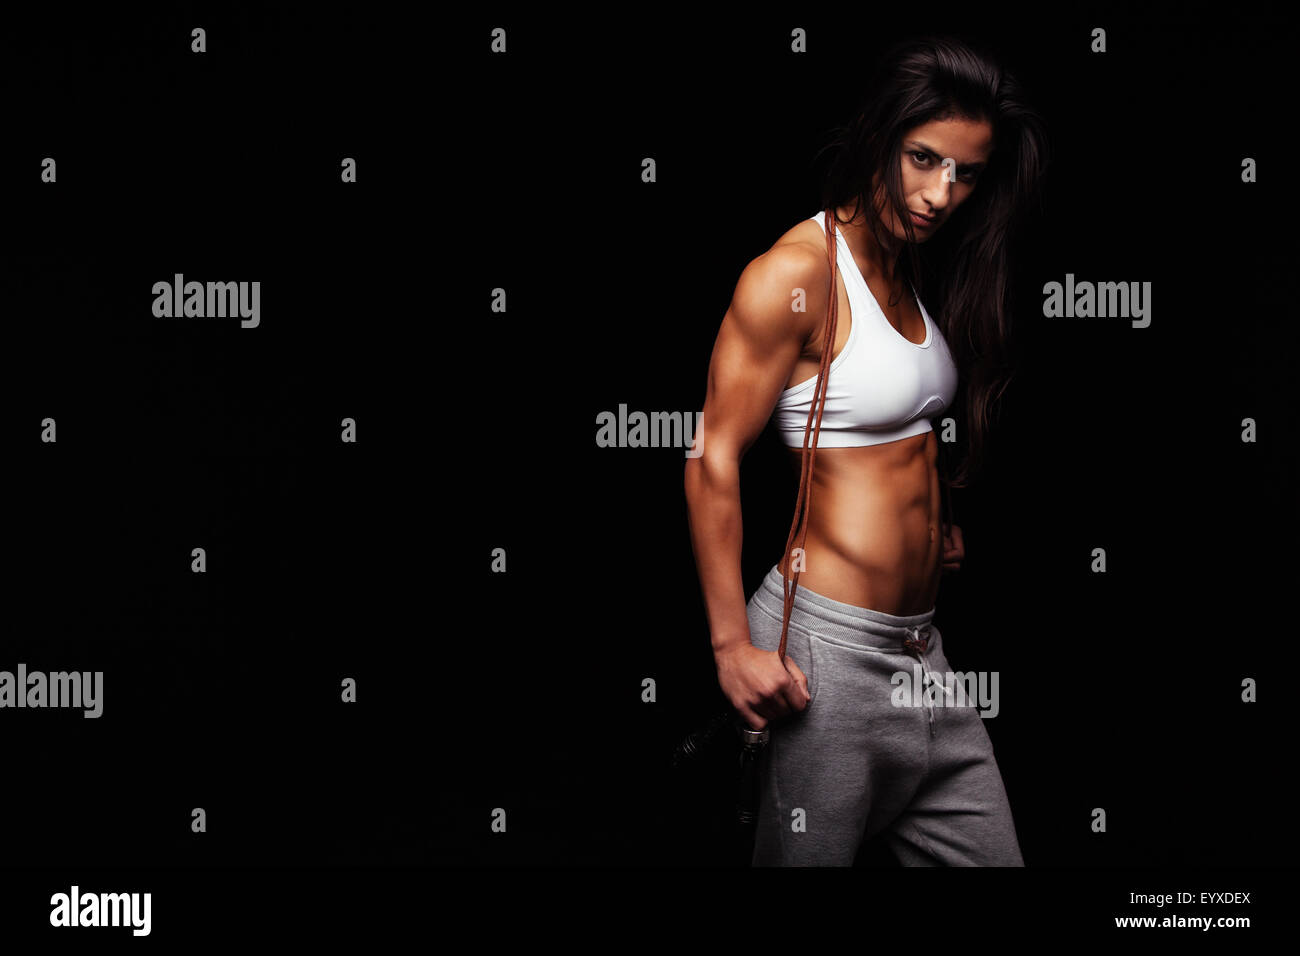 Confident young female athlete posing with jumping rope looking at camera. Muscular woman with skipping rope standing - Stock Image